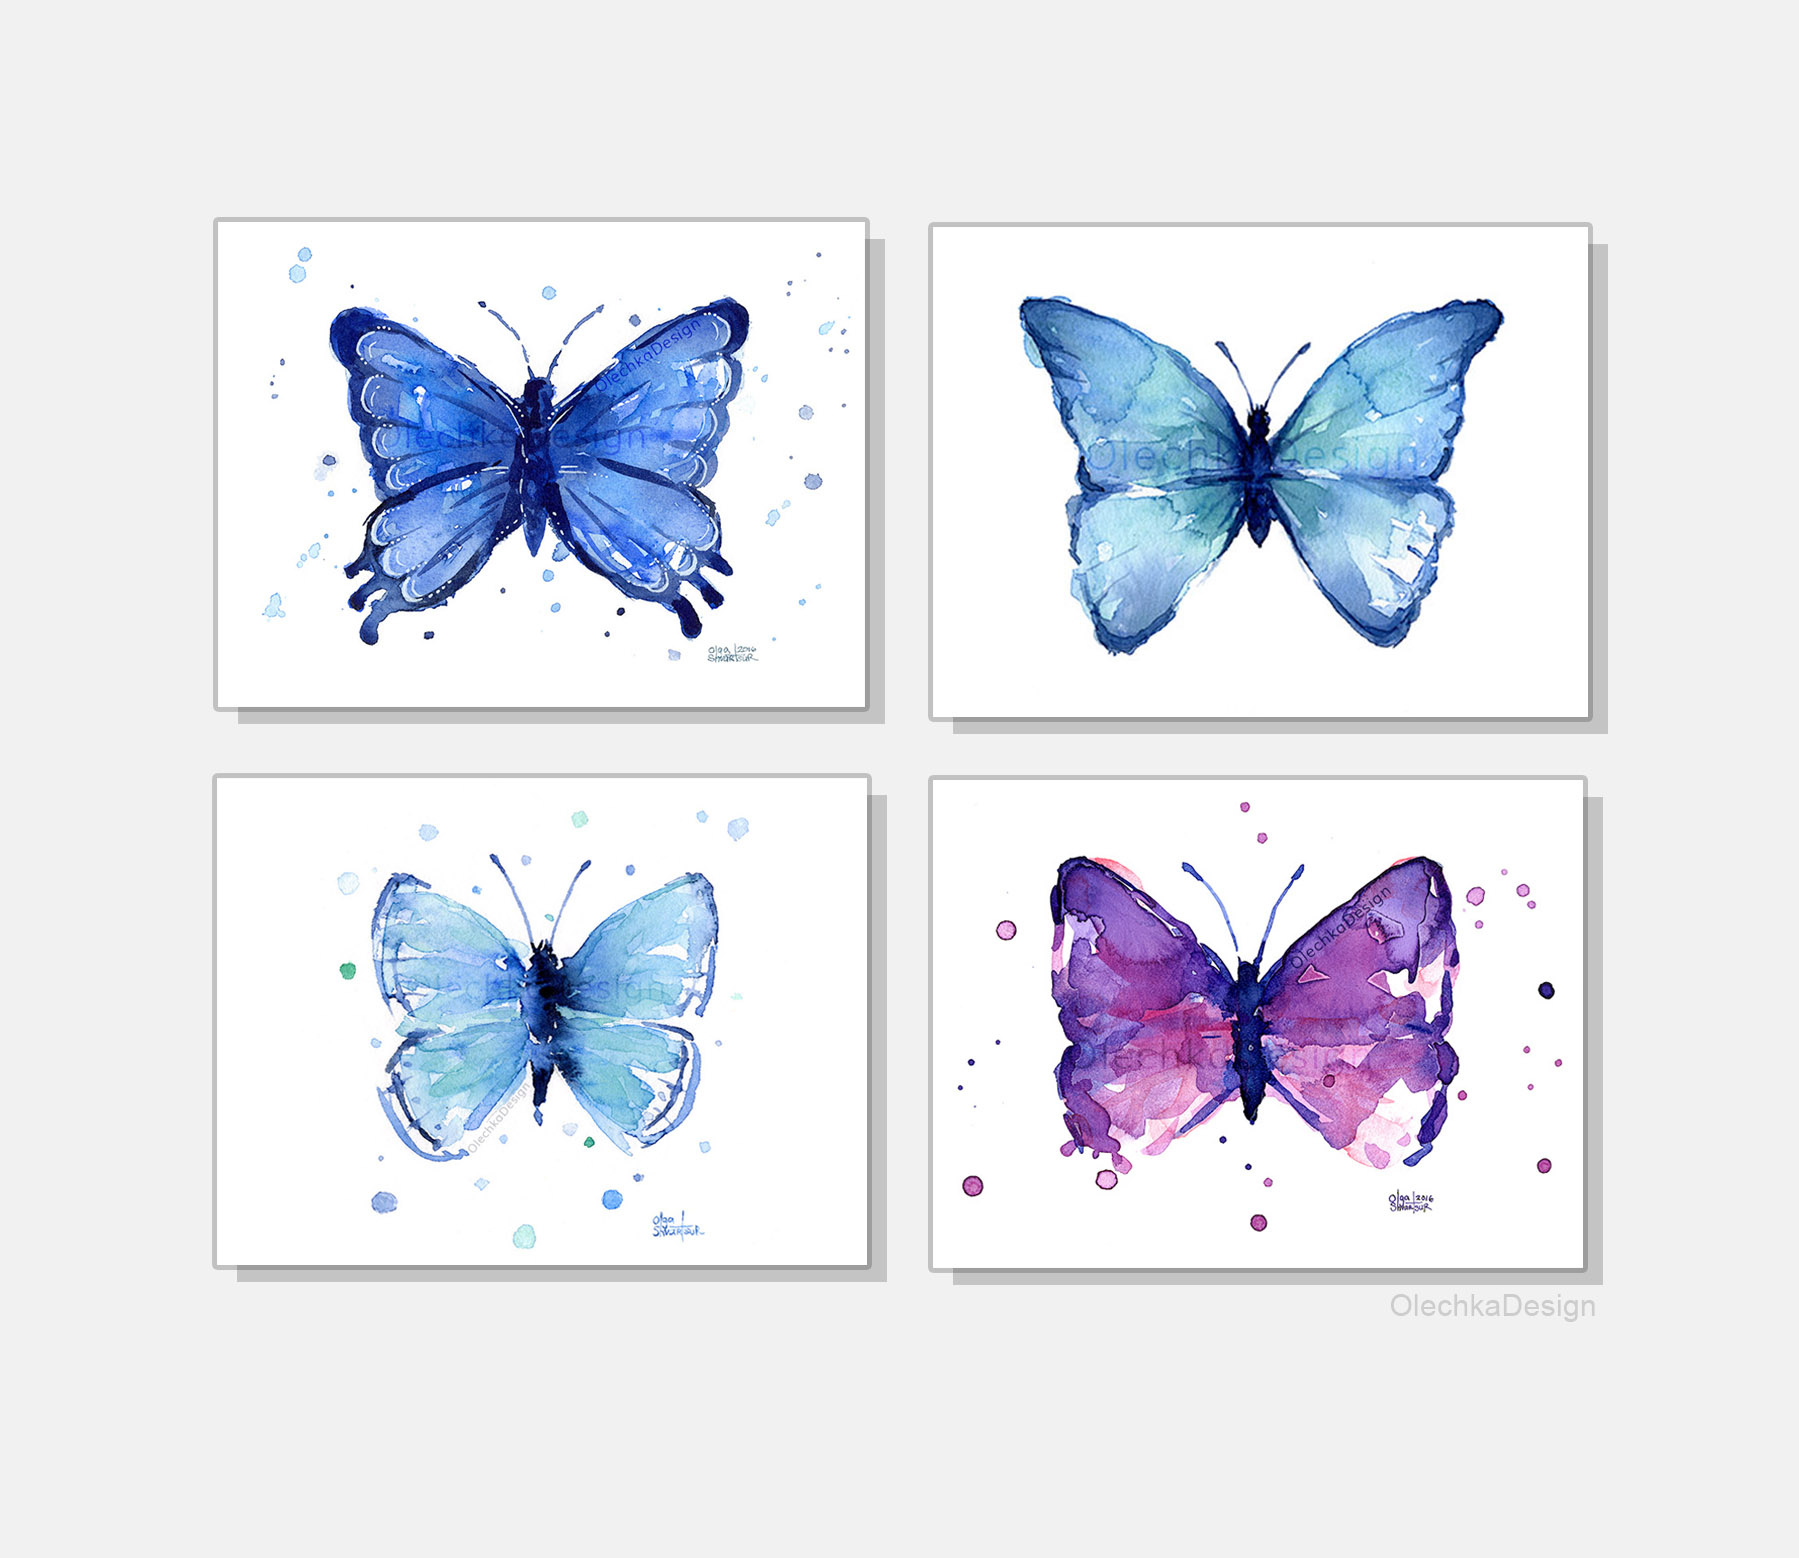 butterfly-watercolor-wall-decor-art-prints-butterfly-print-set-olechkadesign.jpg